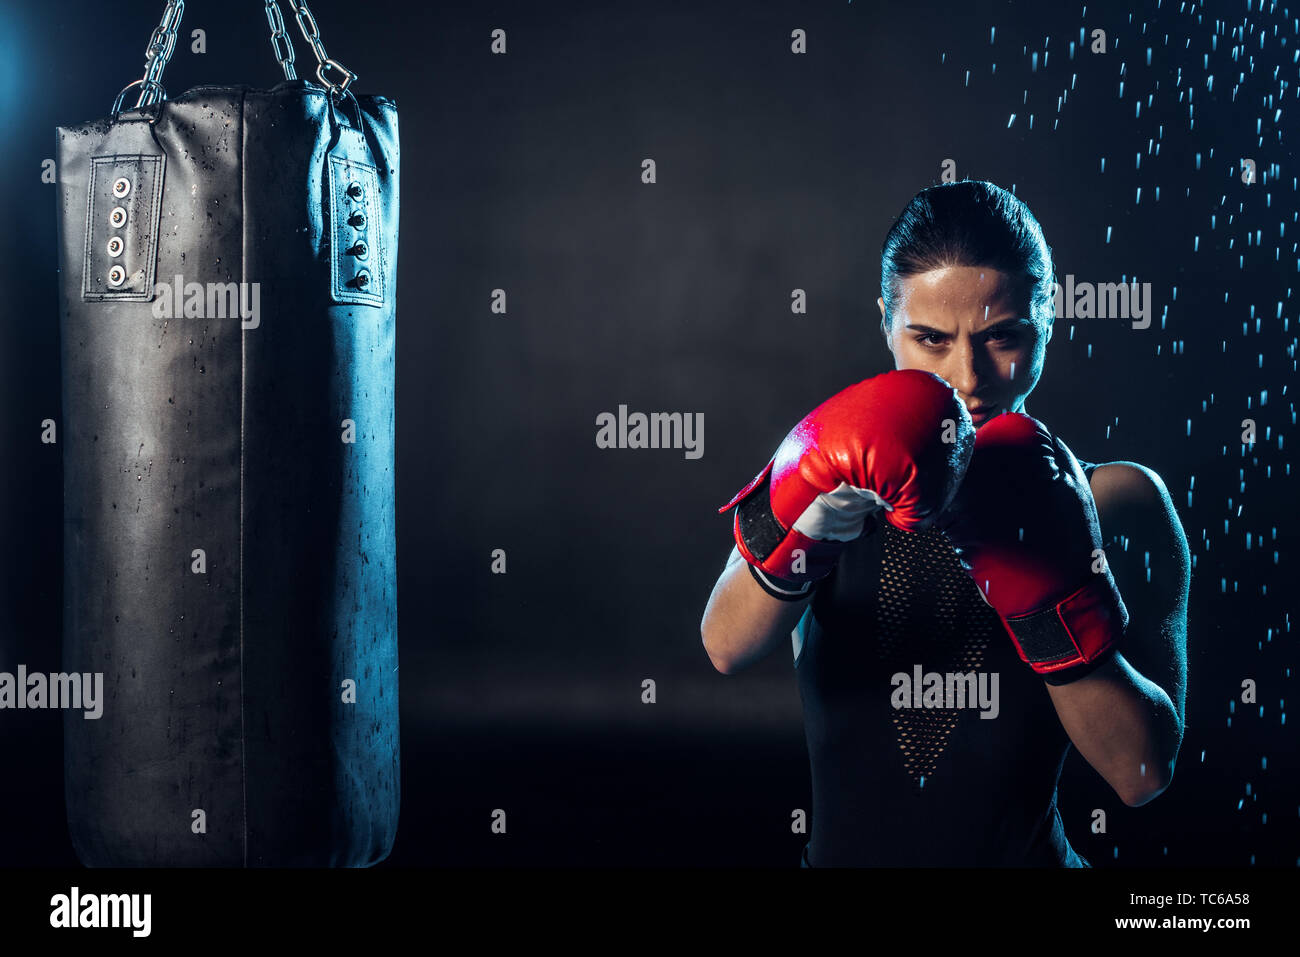 Concentrated boxer in red boxing gloves standing under water drops on black - Stock Image